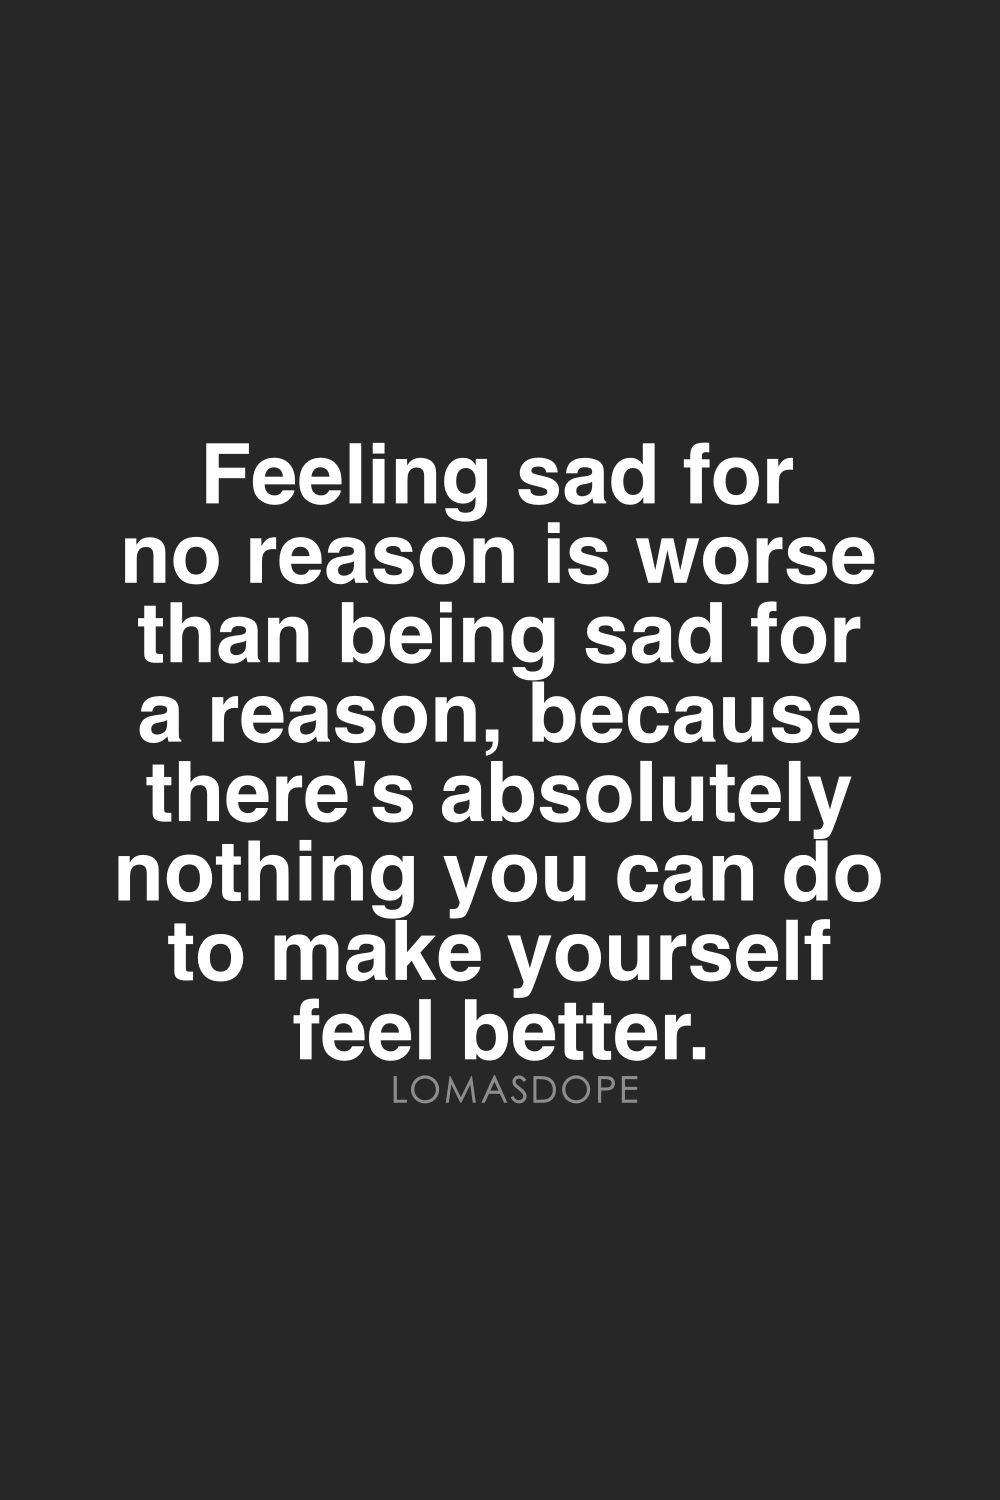 Feeling Sad For No Reason Is Worse Than Being Sad For A Reason